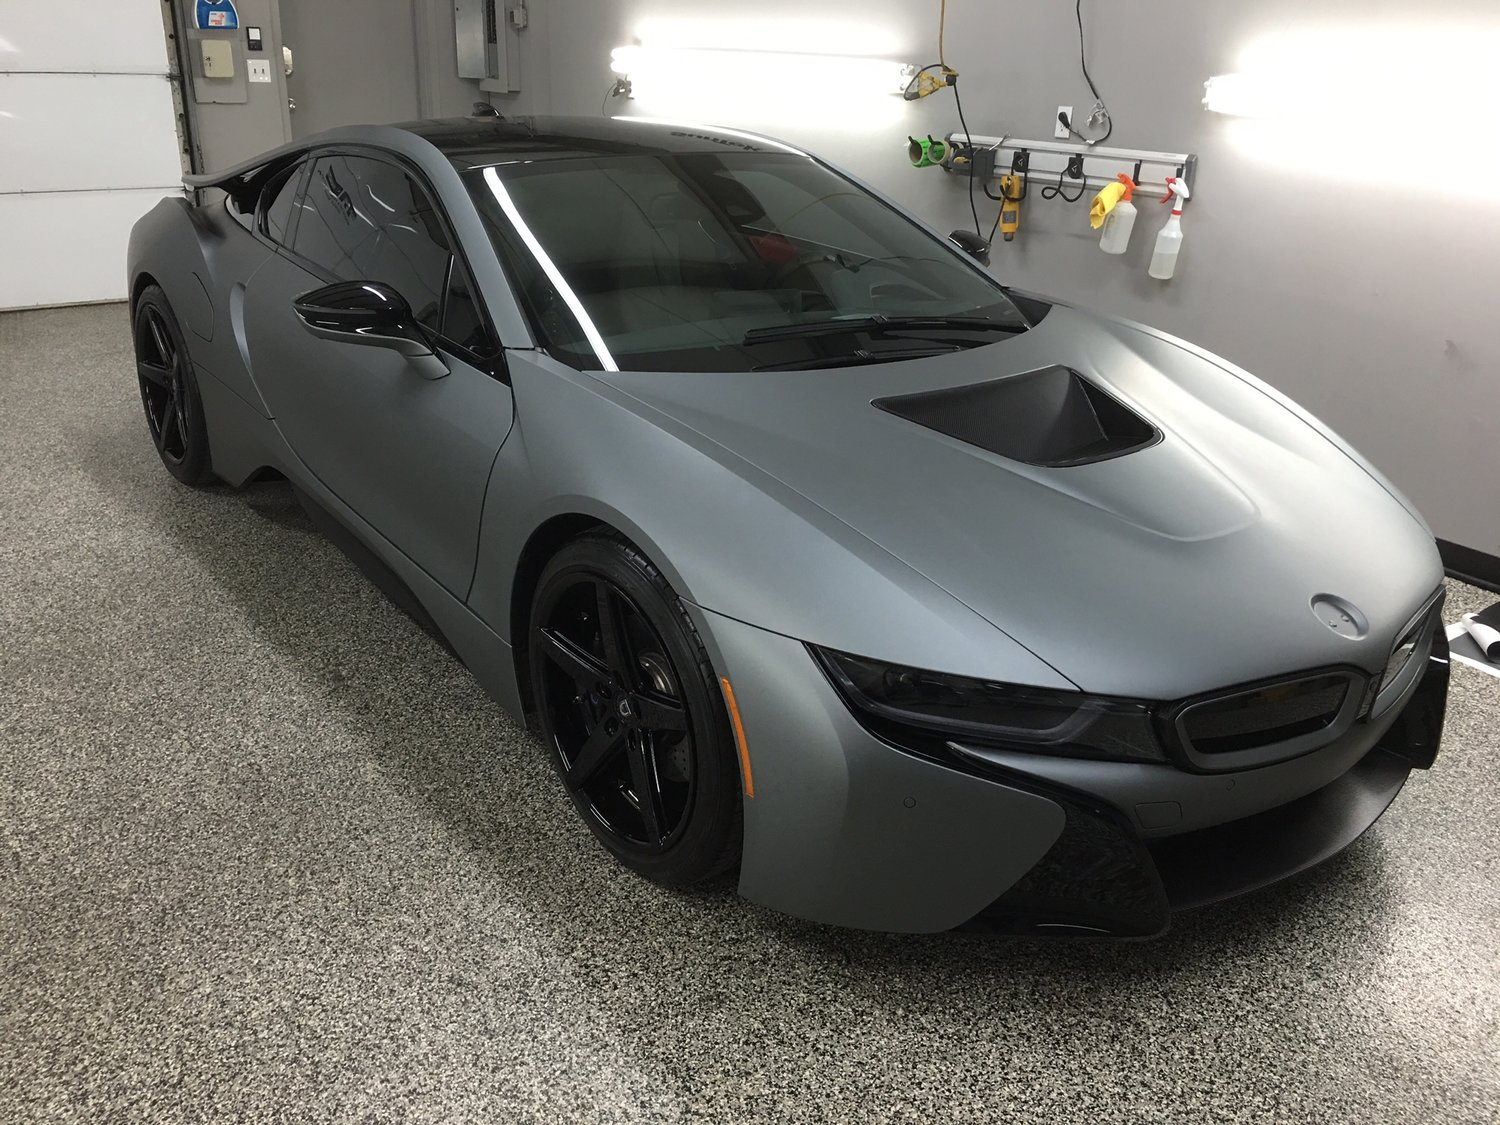 Matte Grey Car >> Matte Car Wraps And How To Care For Them